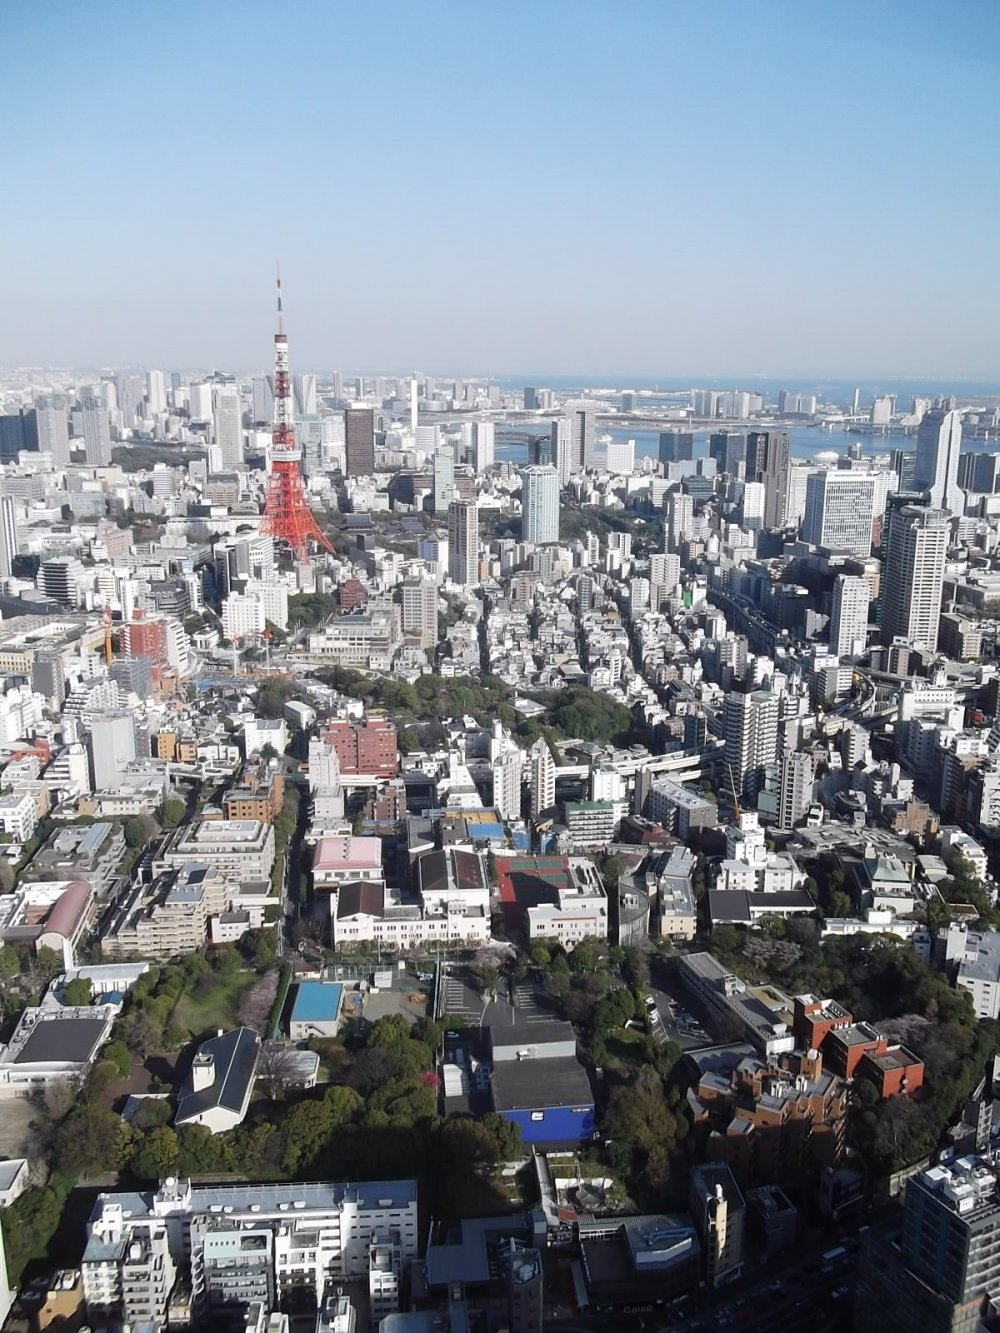 If you go up Tokyo Tower, you can't see it, but from here you can!